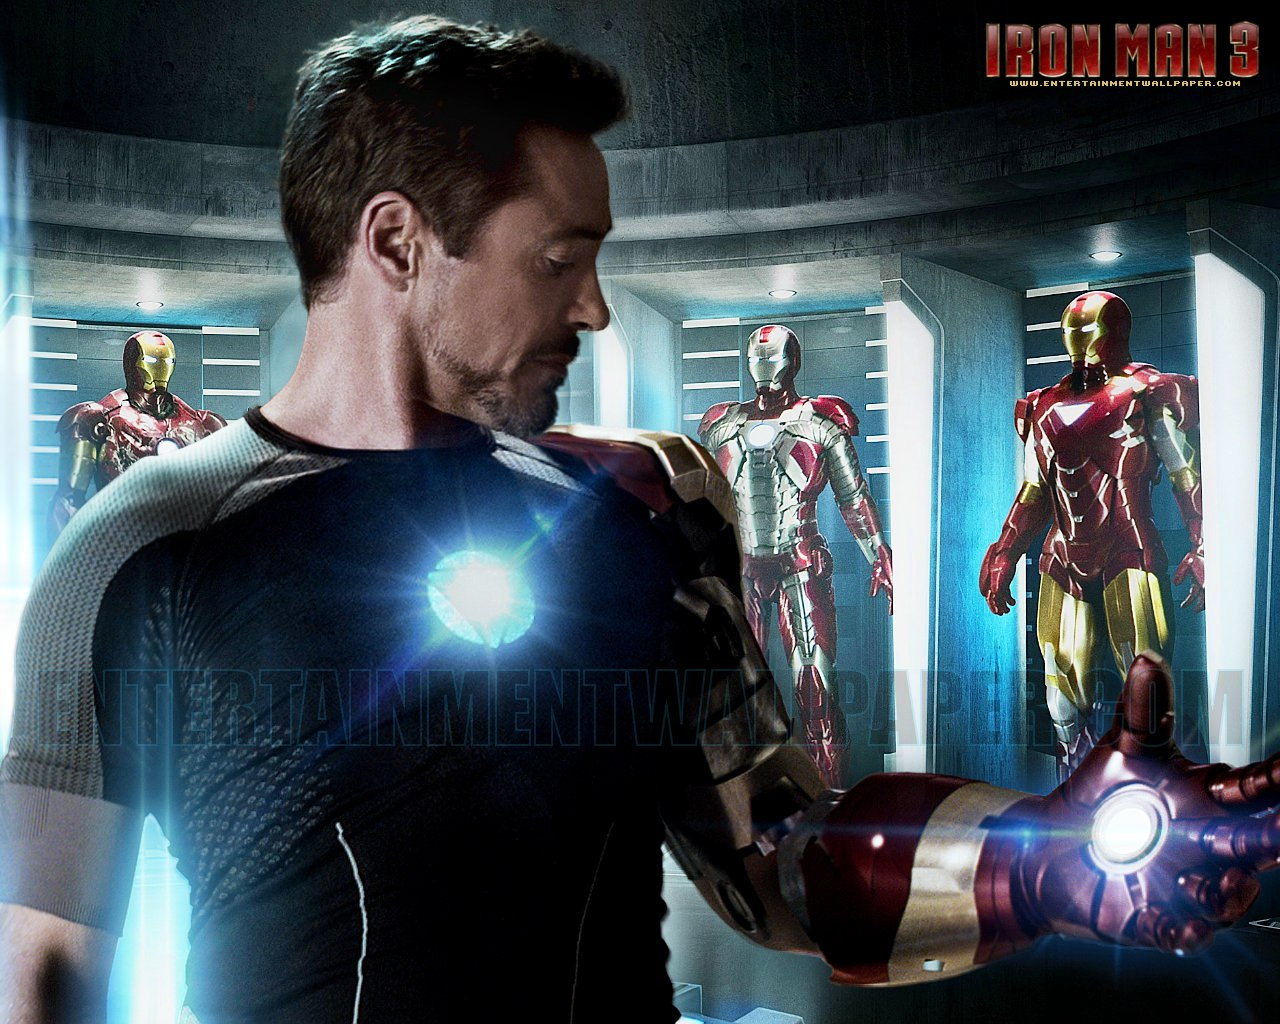 Iron man 3 upcoming